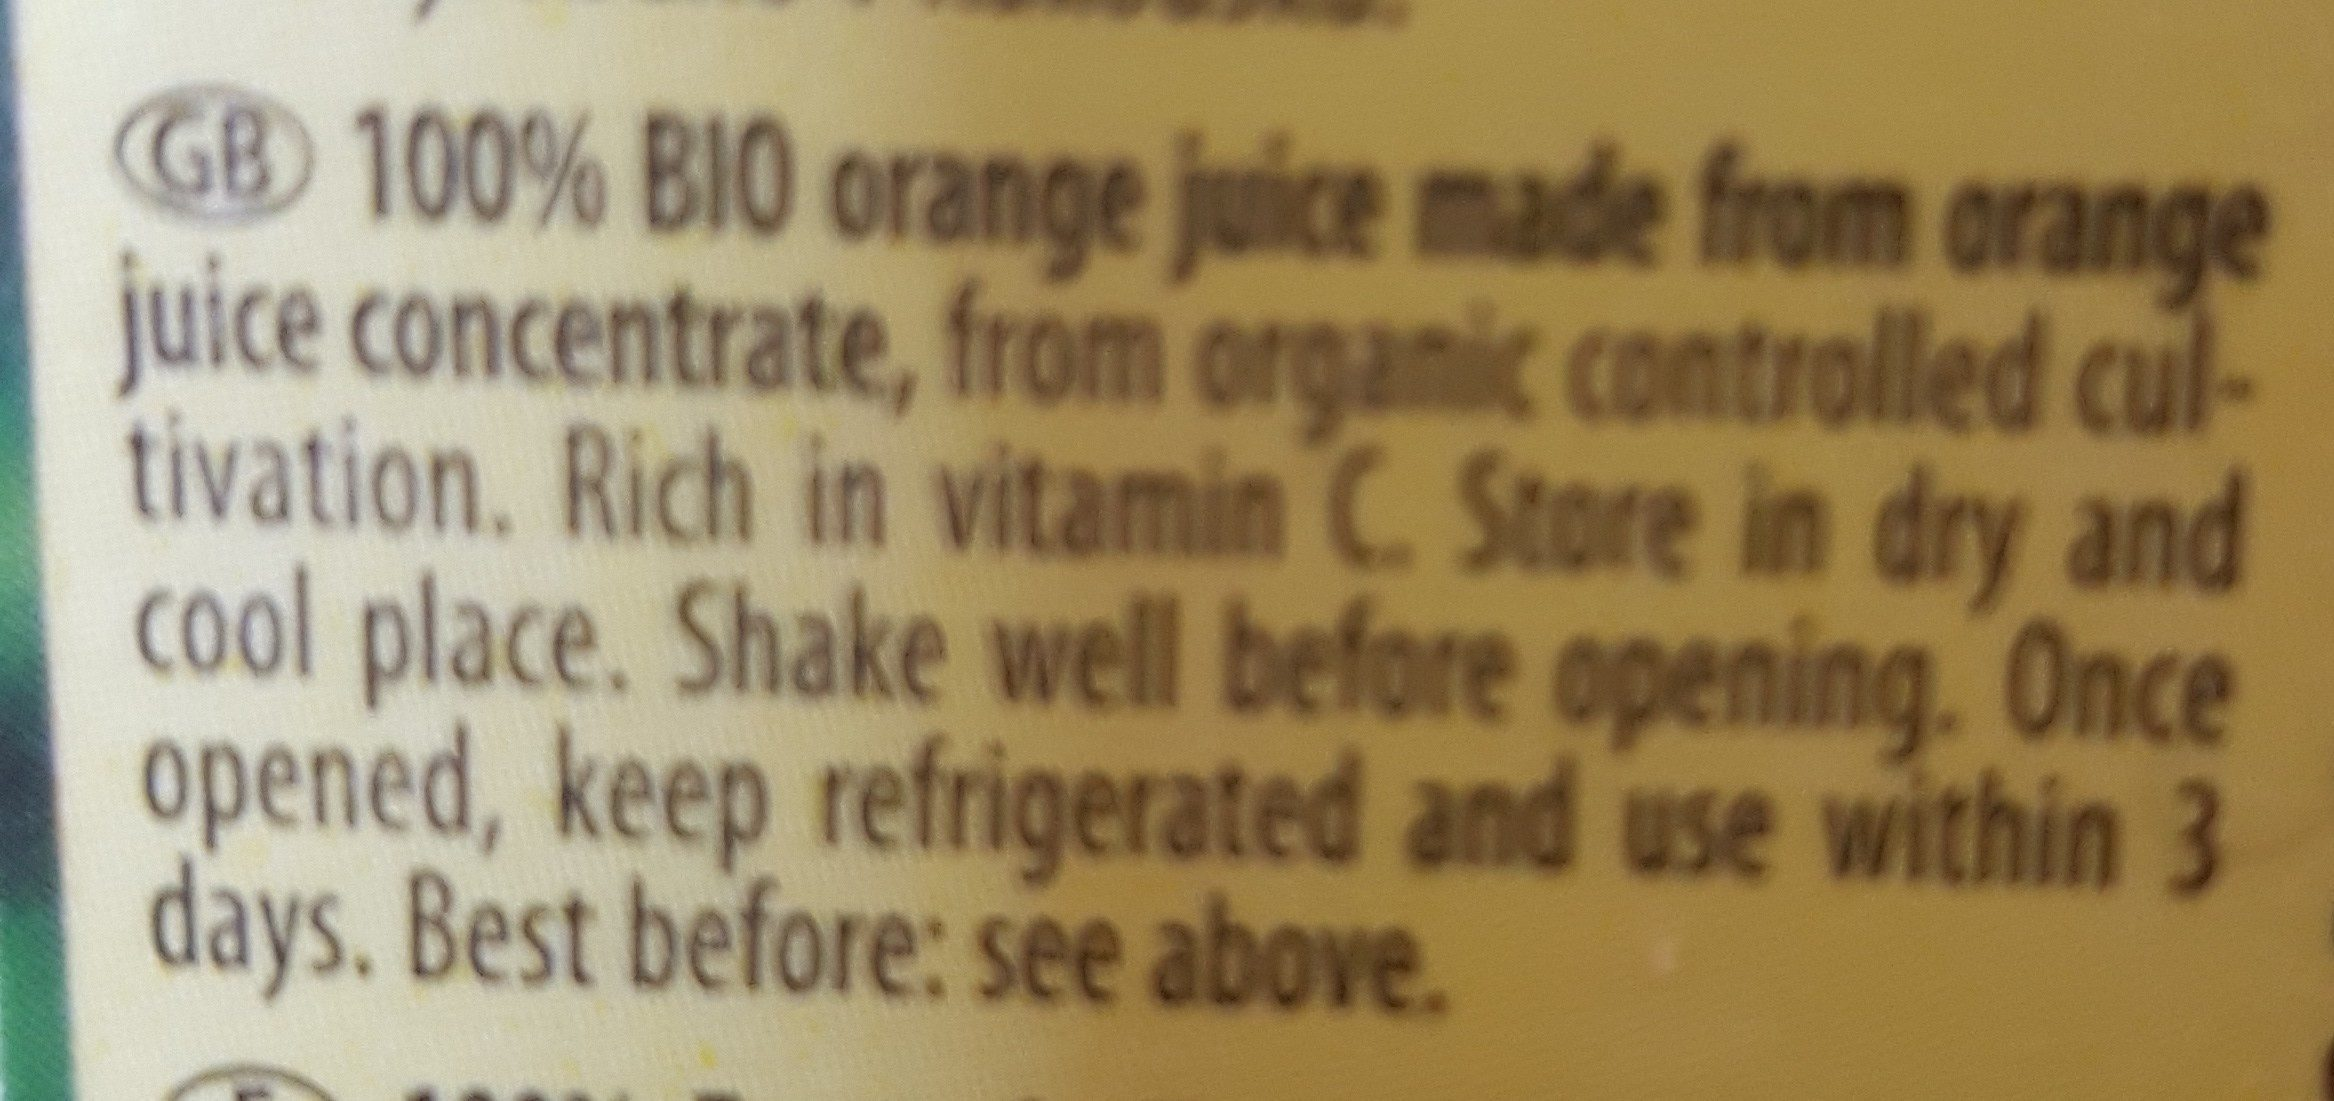 Pfanner Bio Orange 100% 1LTR - Ingredients - fr